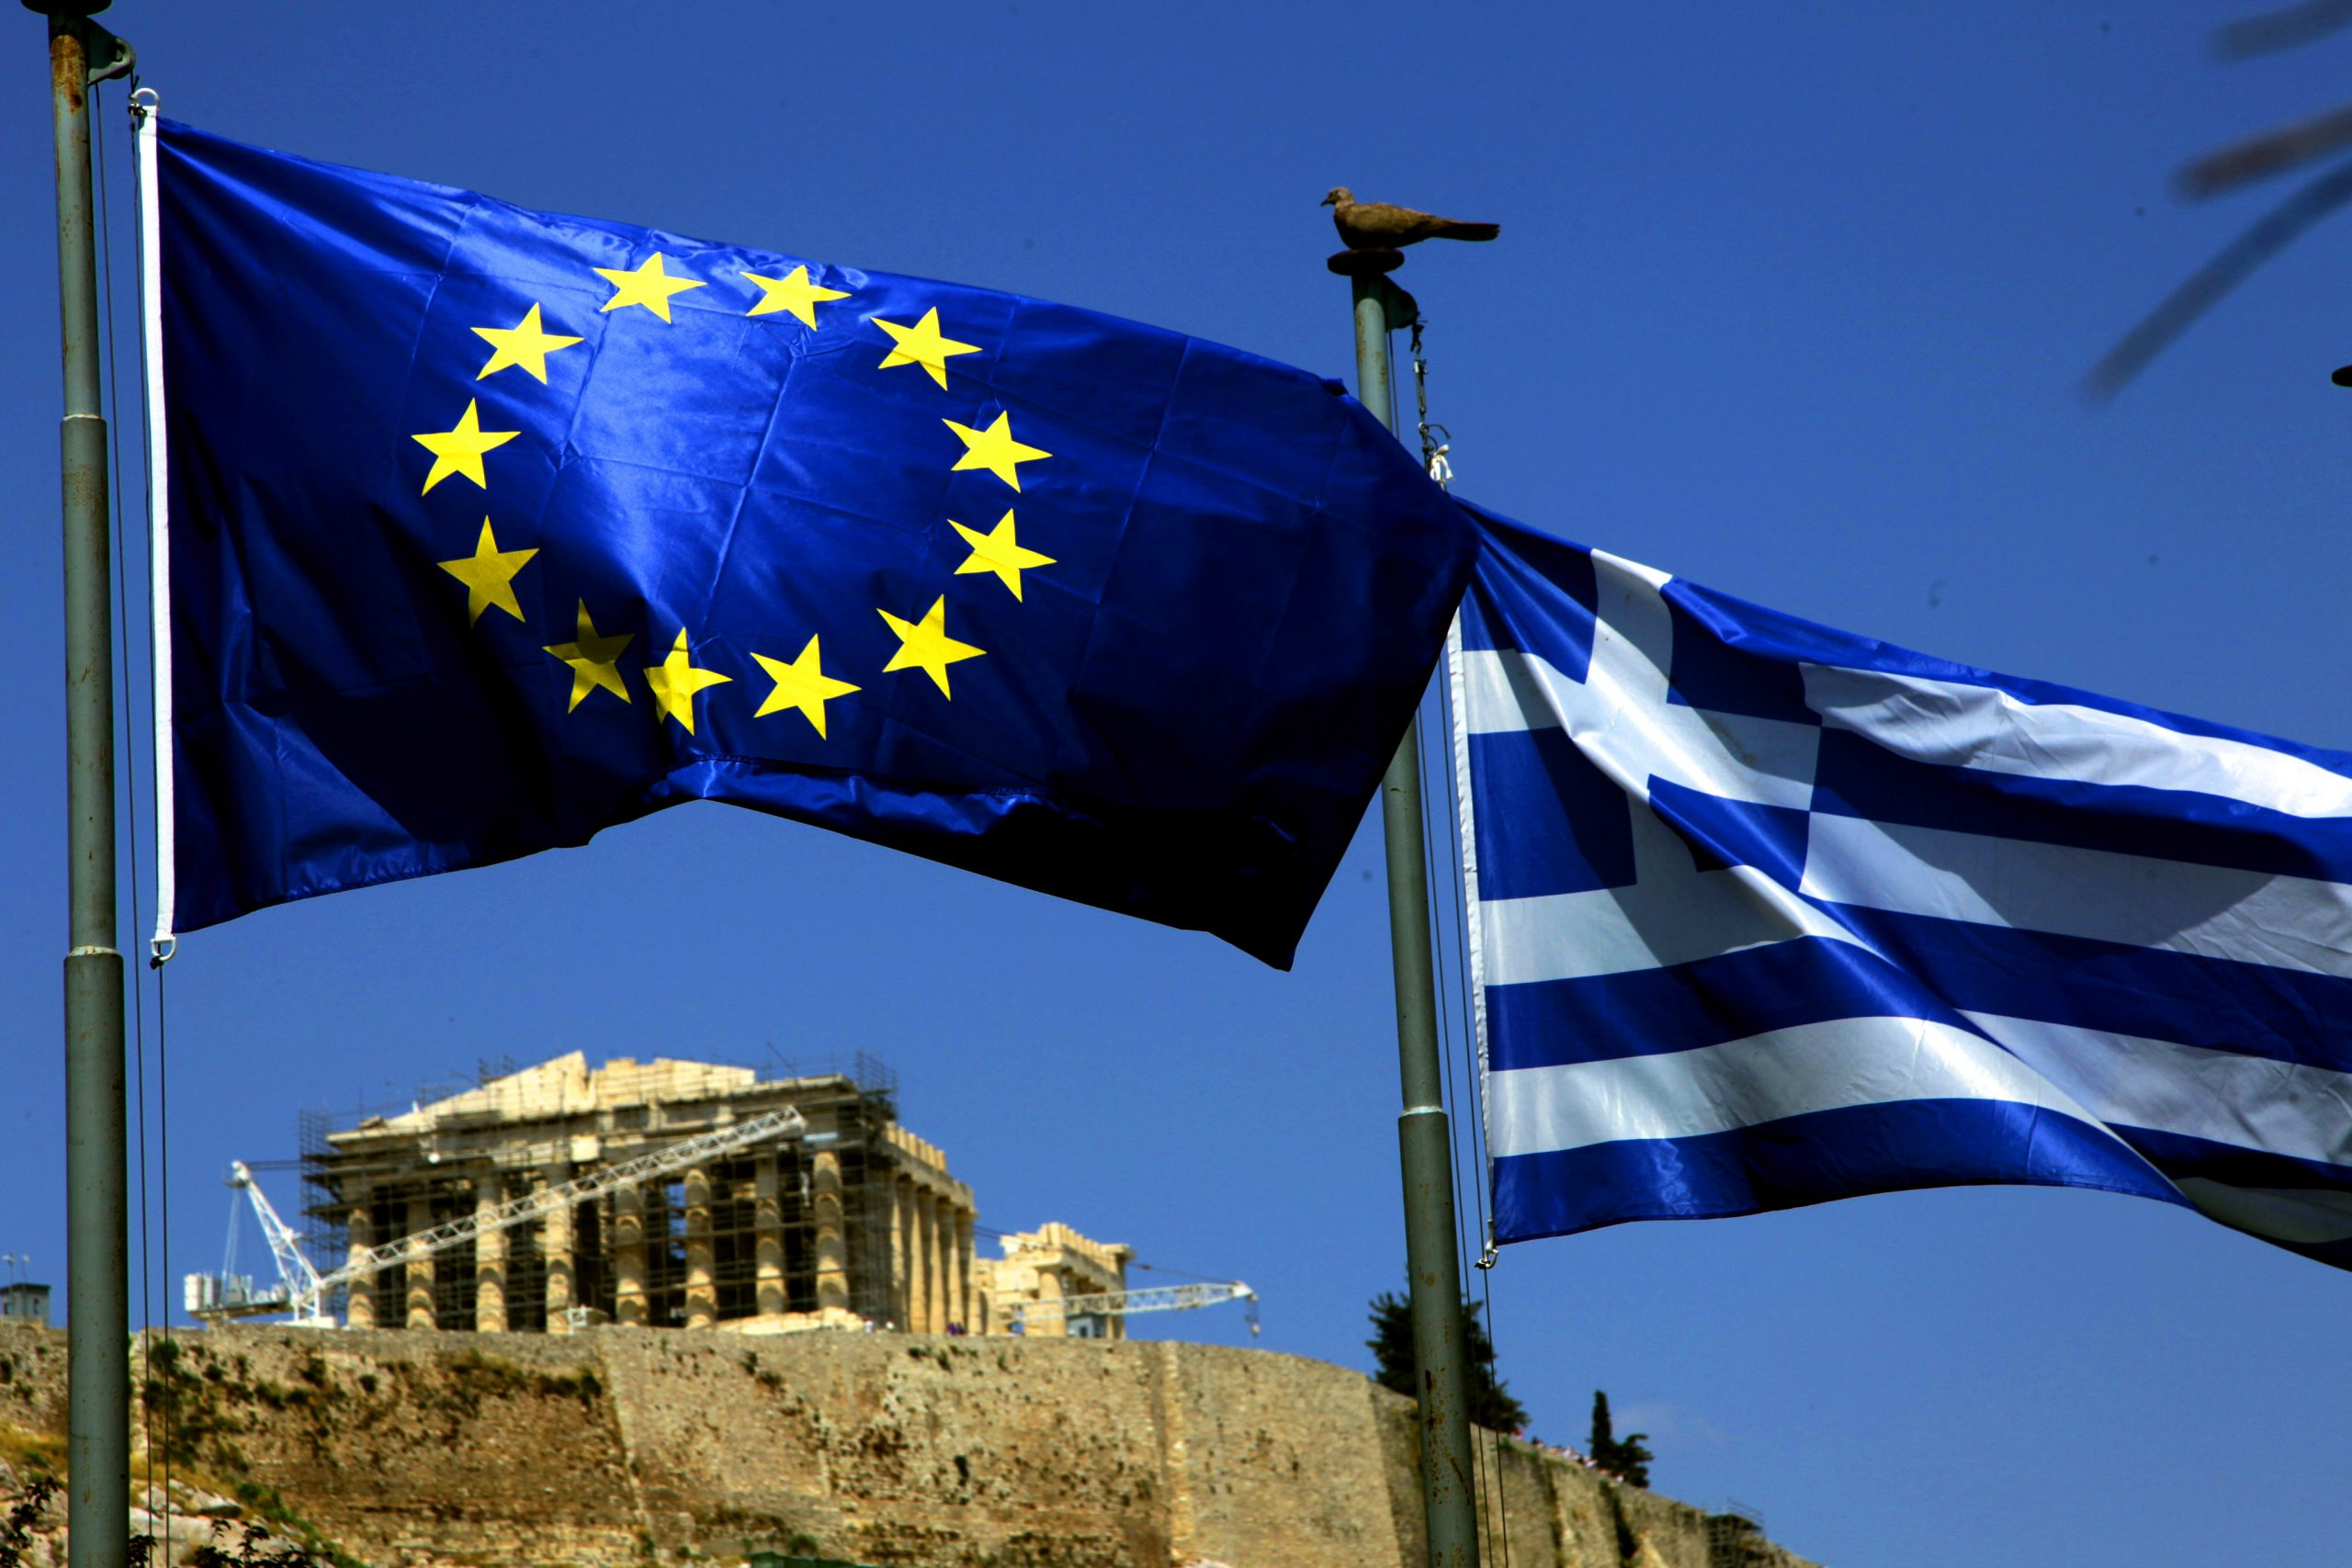 FT: Greece's Covid-19 recovery plan praised by Brussels for 'coherent design